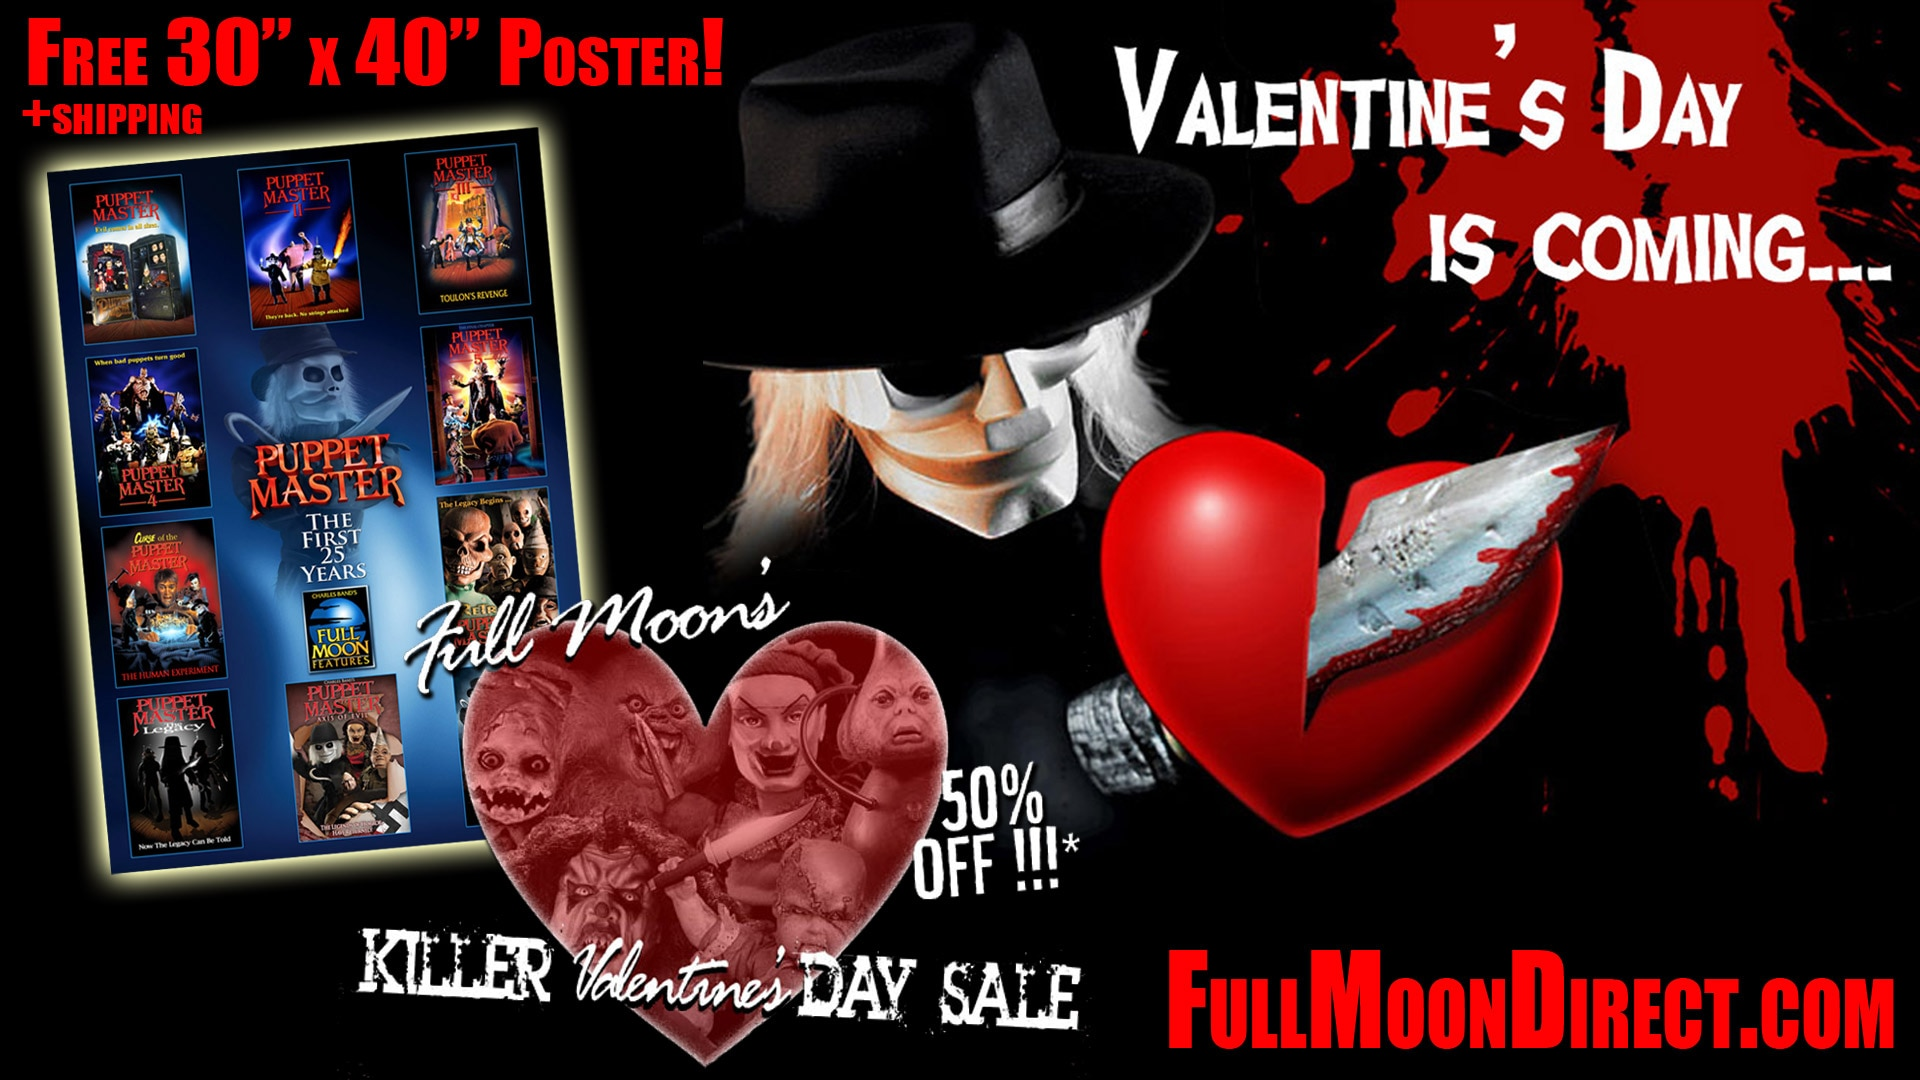 Valentines Day Sale 2015 Free Poster - Win an Evil Bong on 4/20 From Full Moon and Dread Central!